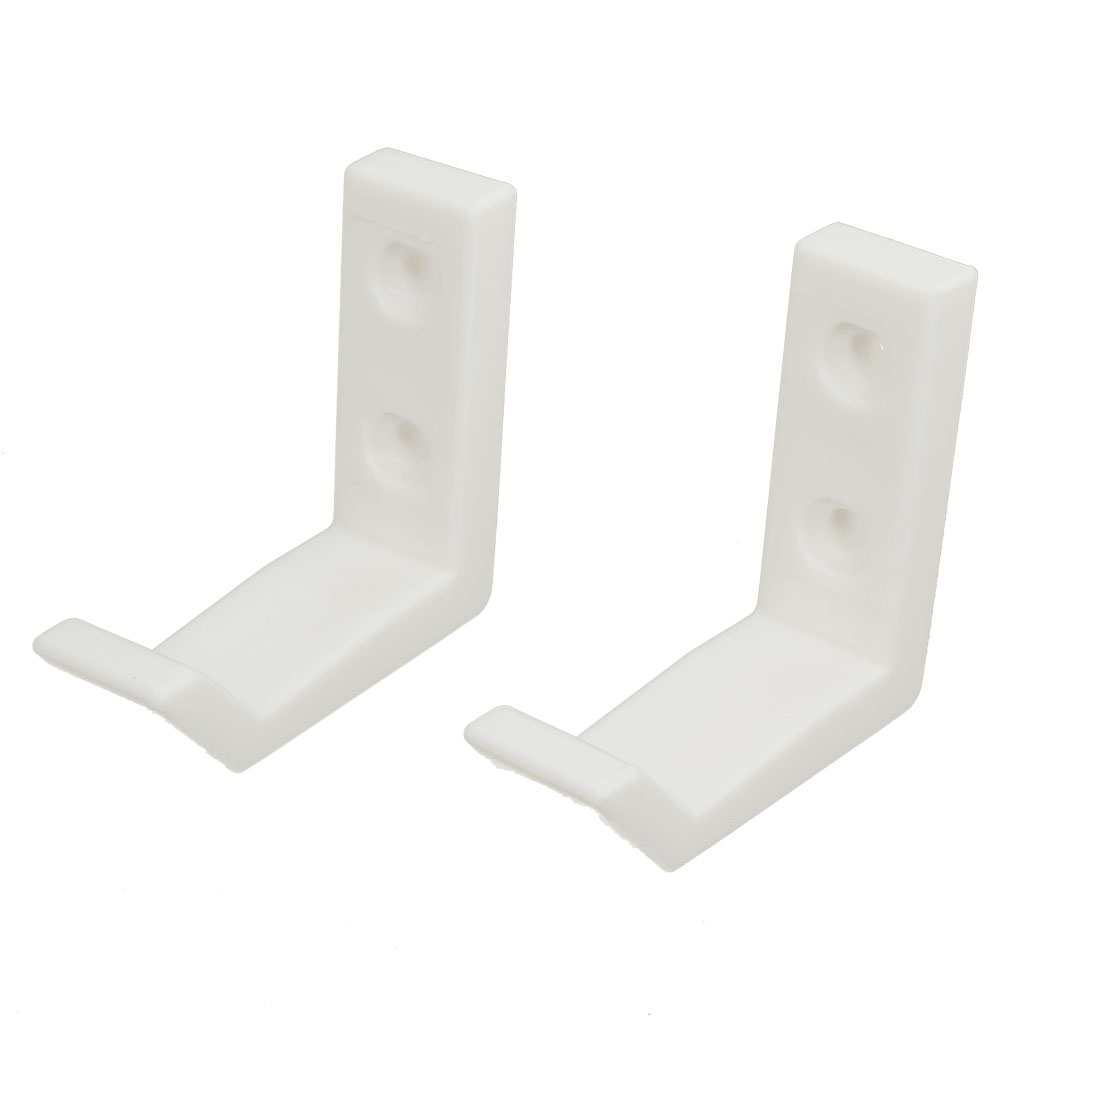 Bathroom Bedroom Plastic Wall Mounted Hanging Hook Hangers White 2pcs